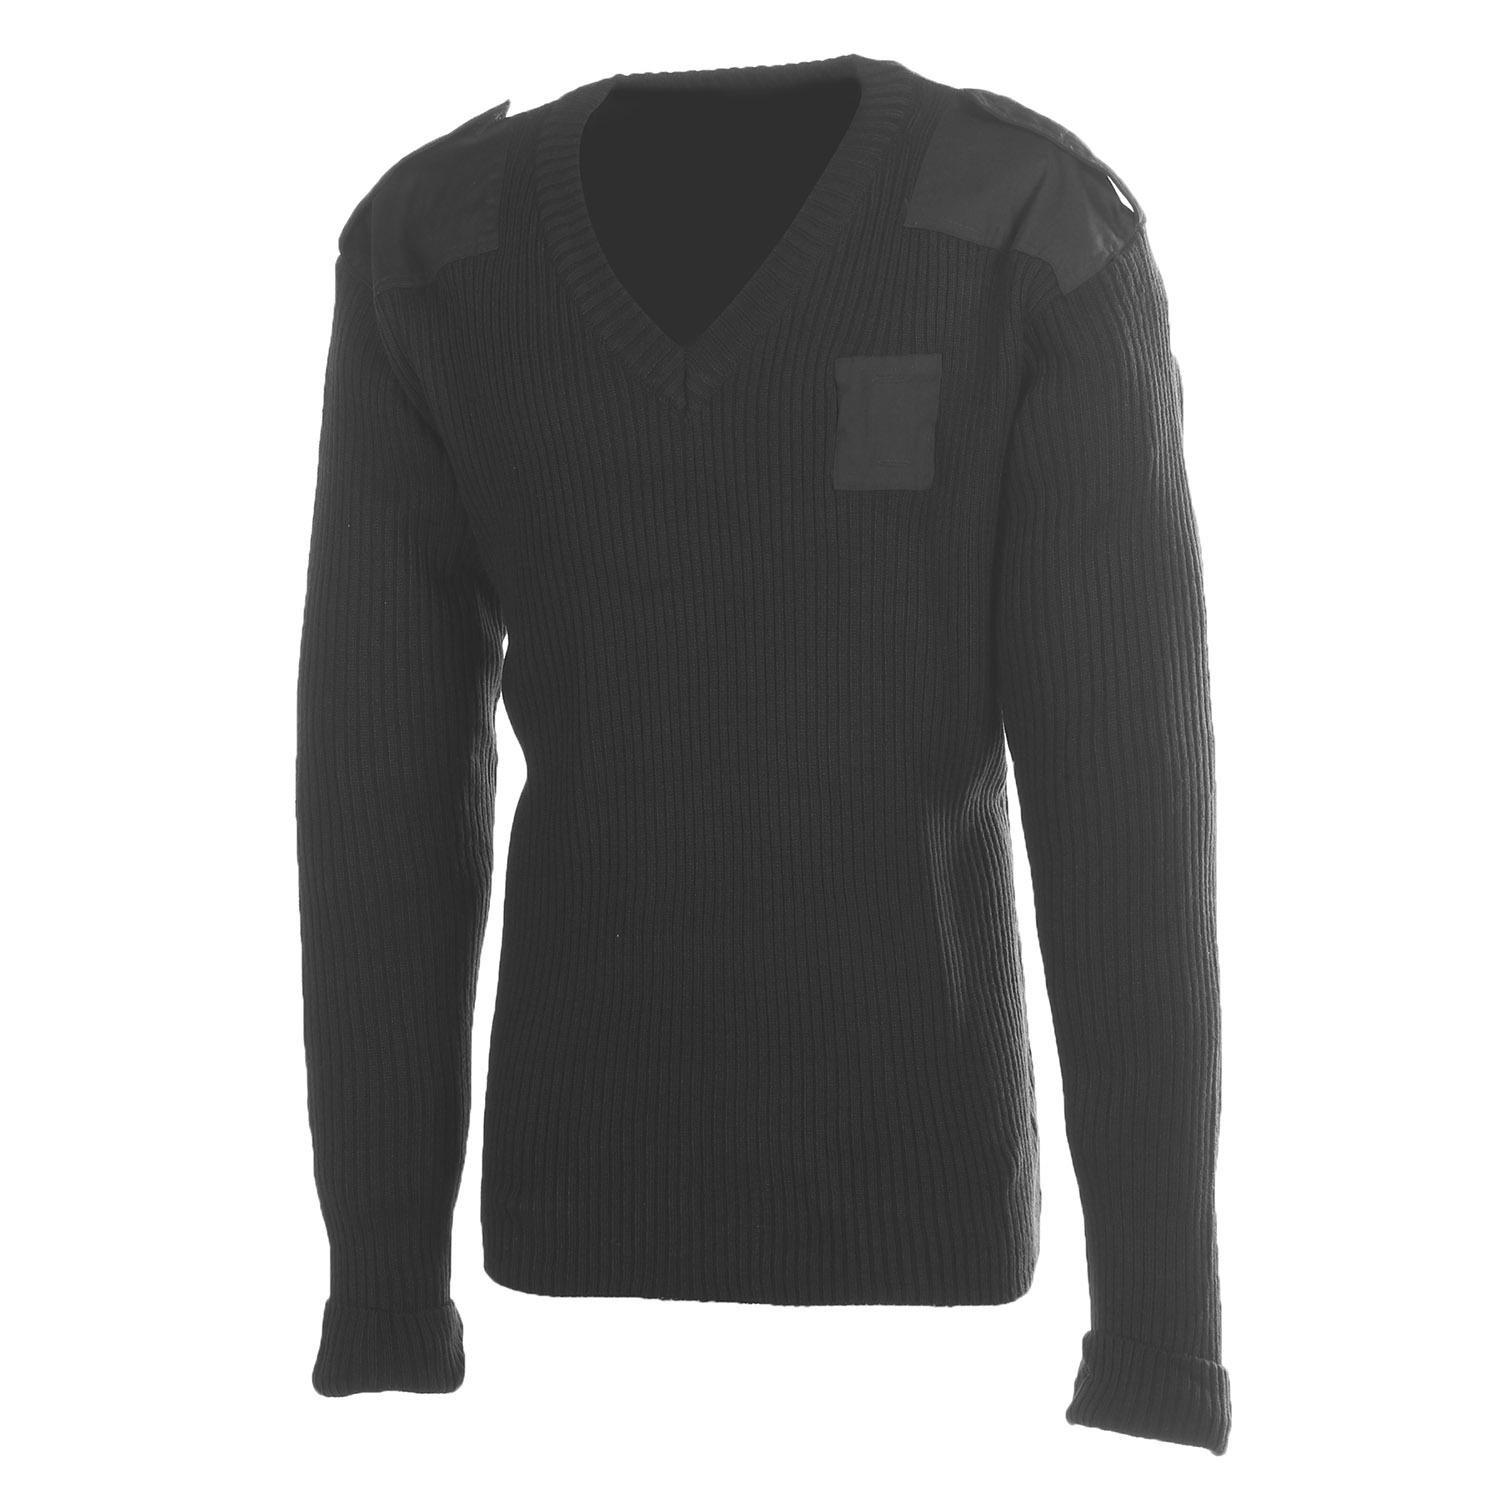 LawPro Commando Sweater